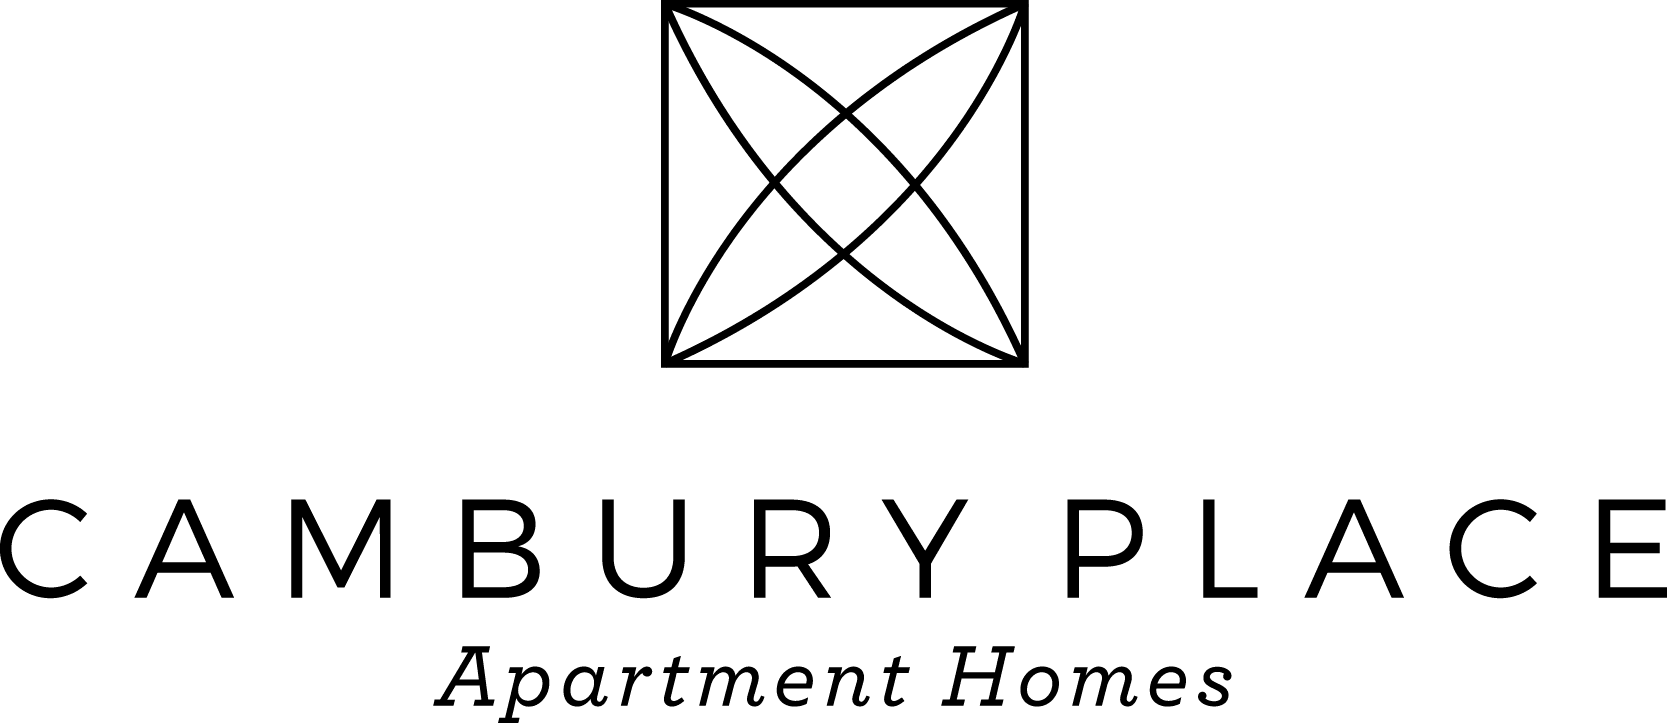 Cambury Place Apartments